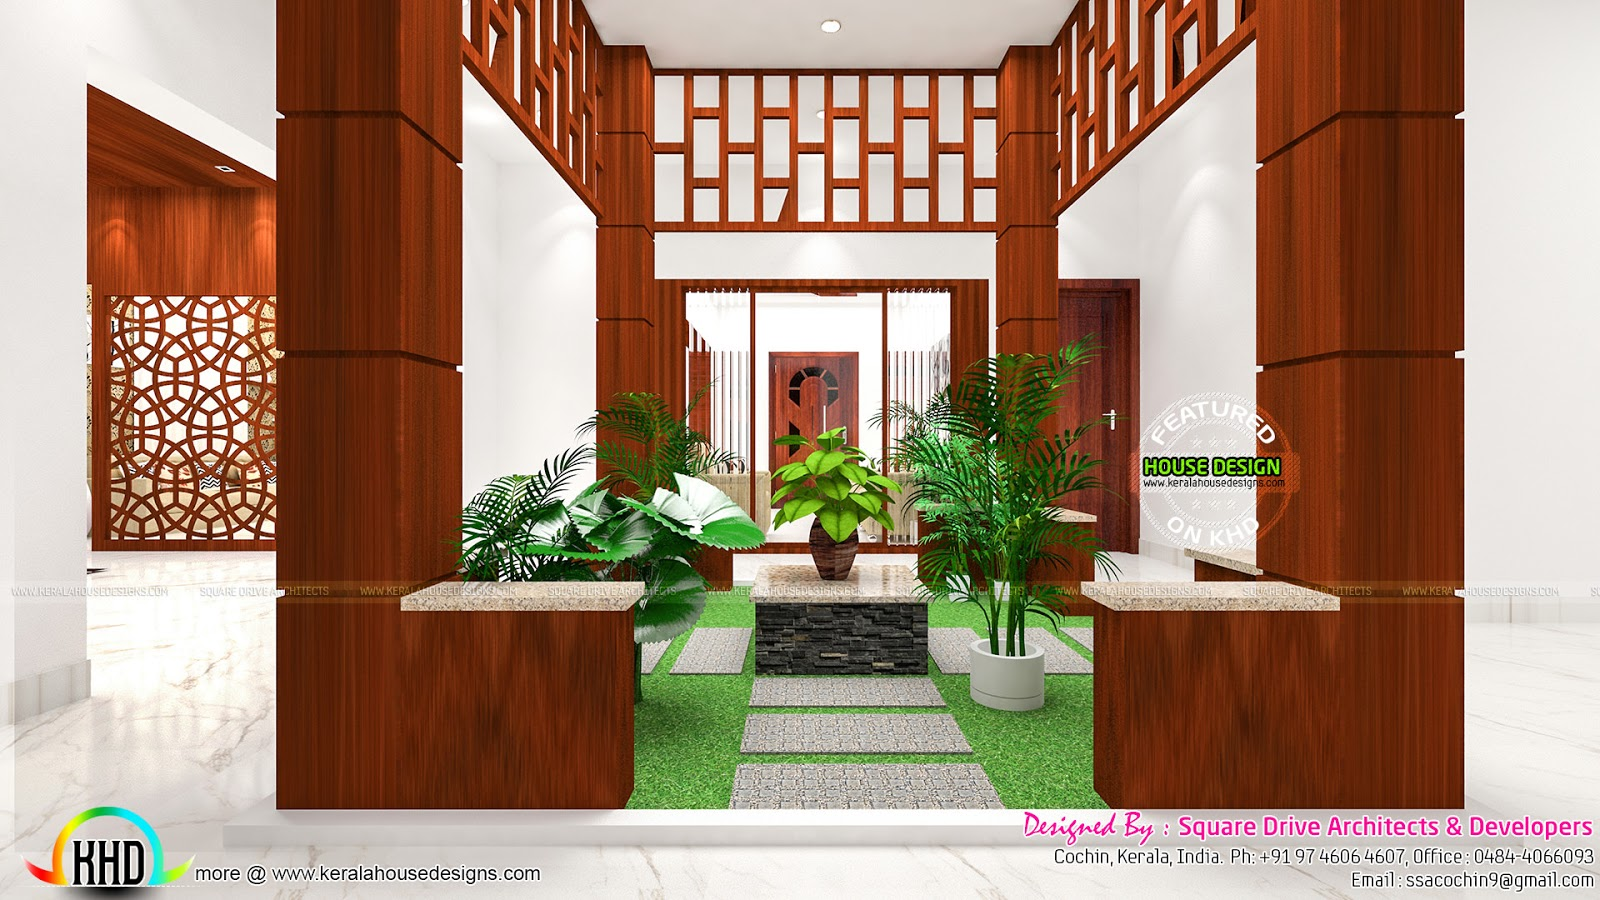 Courtyard Kitchen And Bedroom Interiors Kerala Home Design And Floor Plans